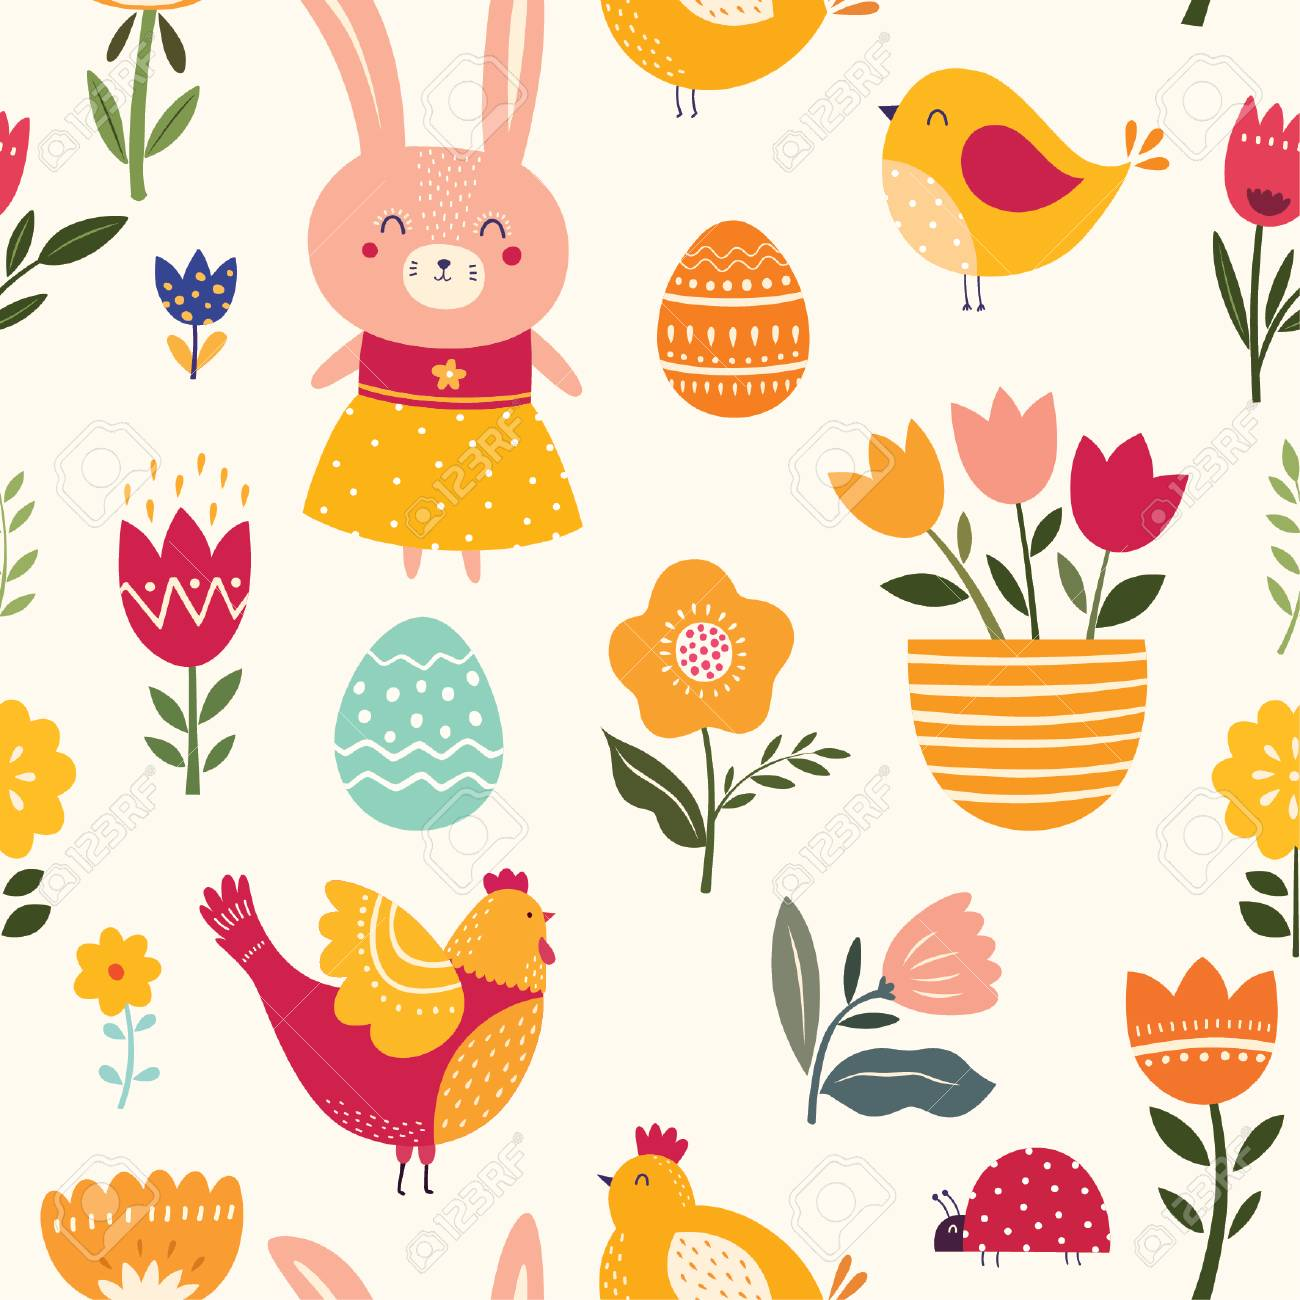 Seamless pattern with cute bunny, chicken and flowers - 97555647